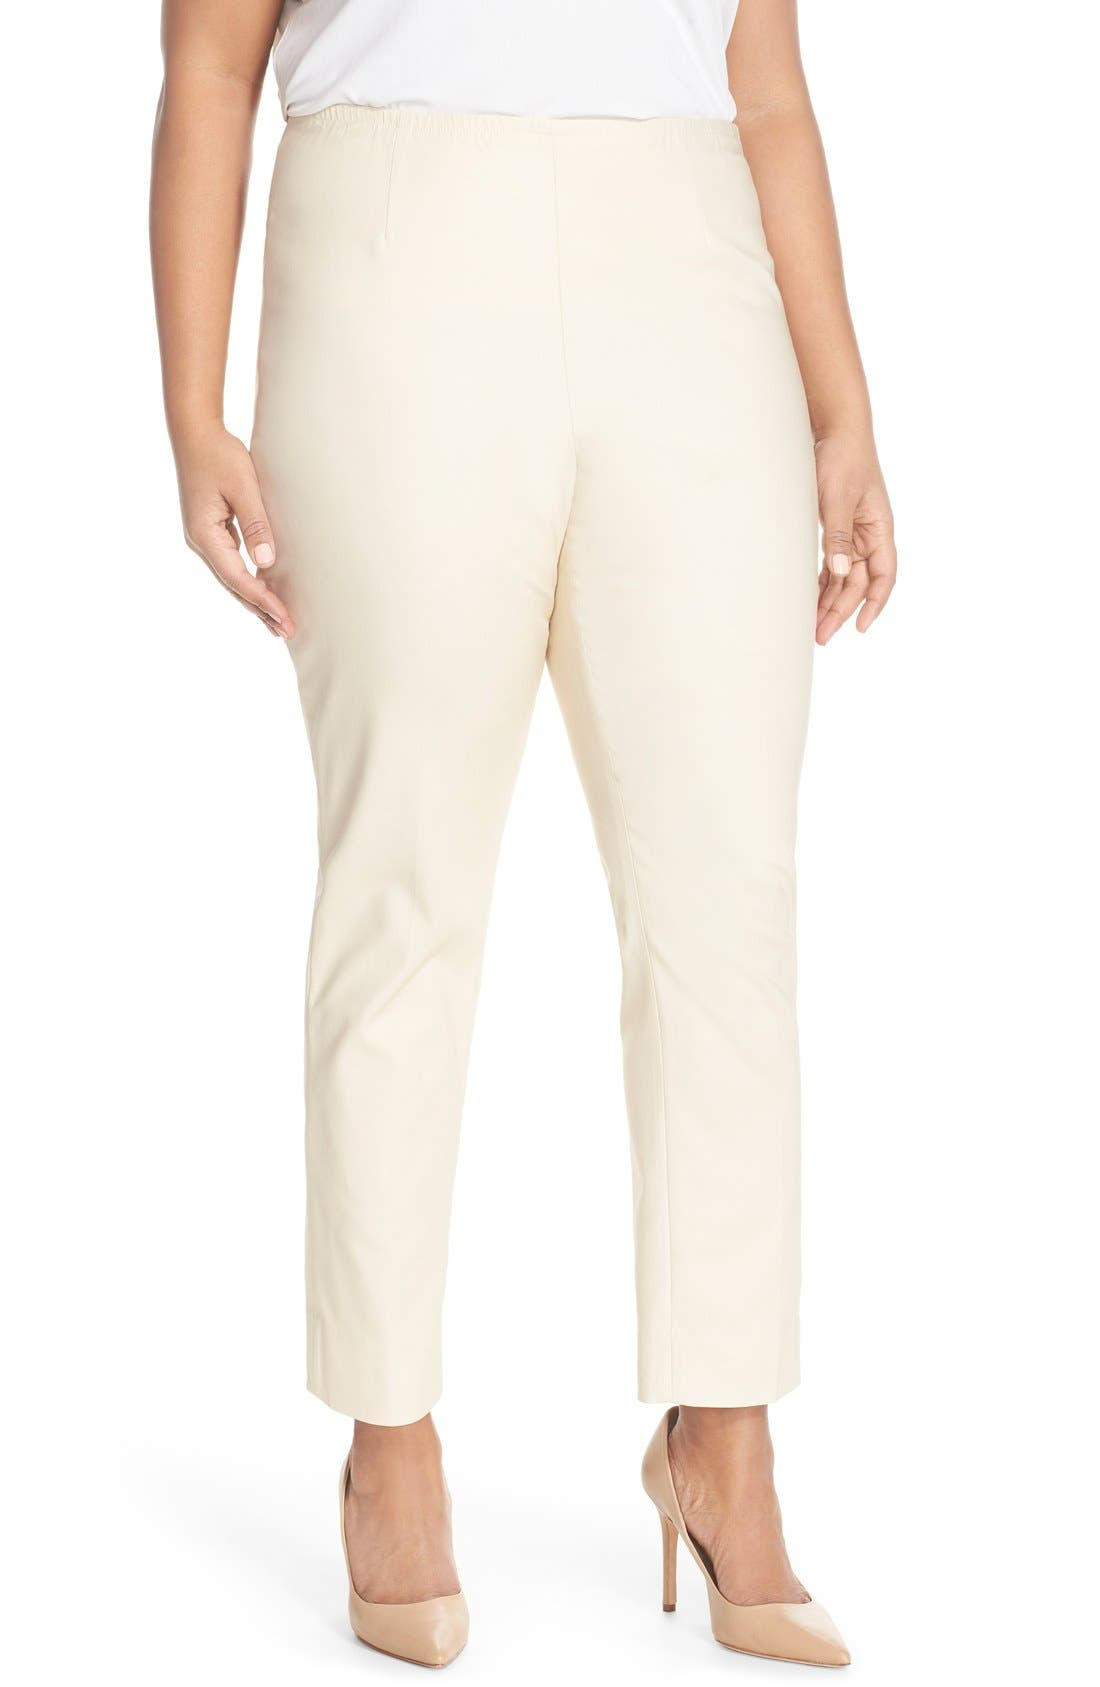 Alternate Image 1 Selected - NIC+ZOE 'Perfect' Side Zip Pants (Plus Size)